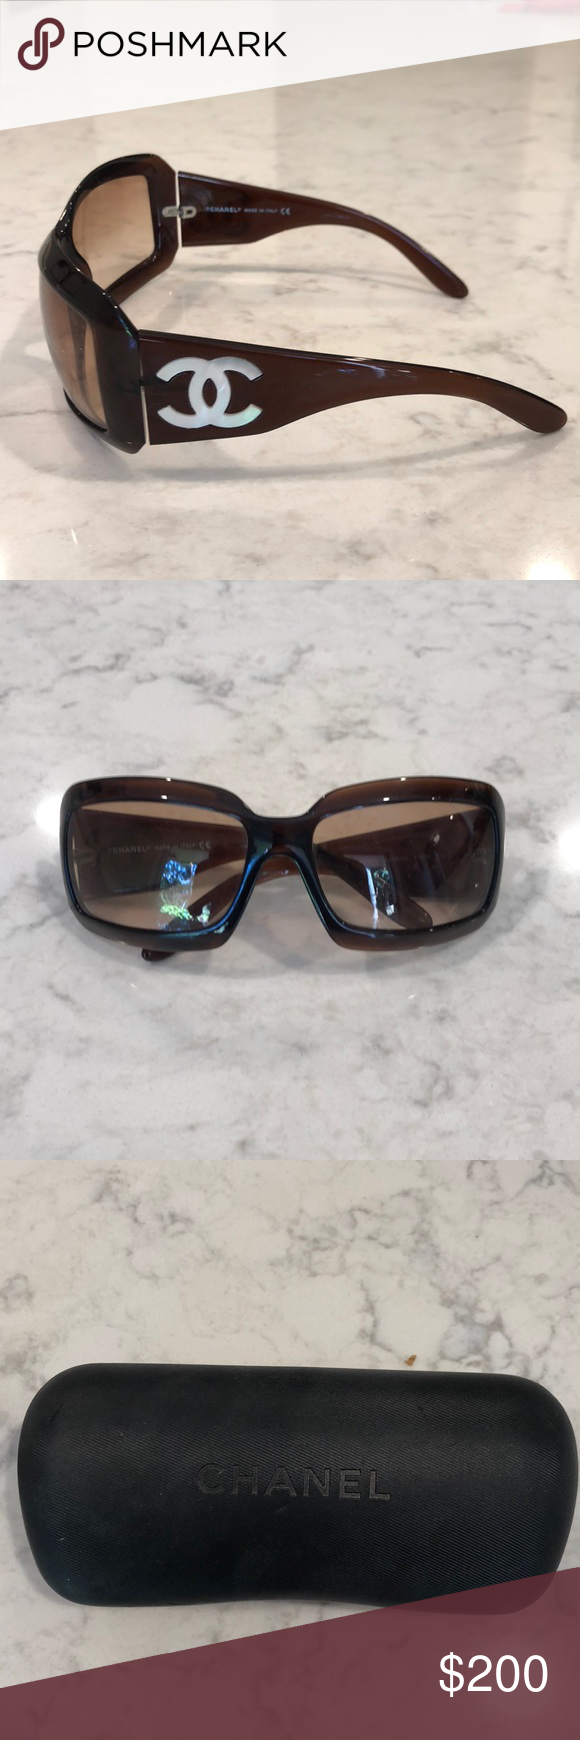 1e50f0dec73 Chanel sunglasses Perfect condition! Chanel tortoise sunglasses with mother  of pearl logo on sides. Includes case. CHANEL Accessories Sunglasses